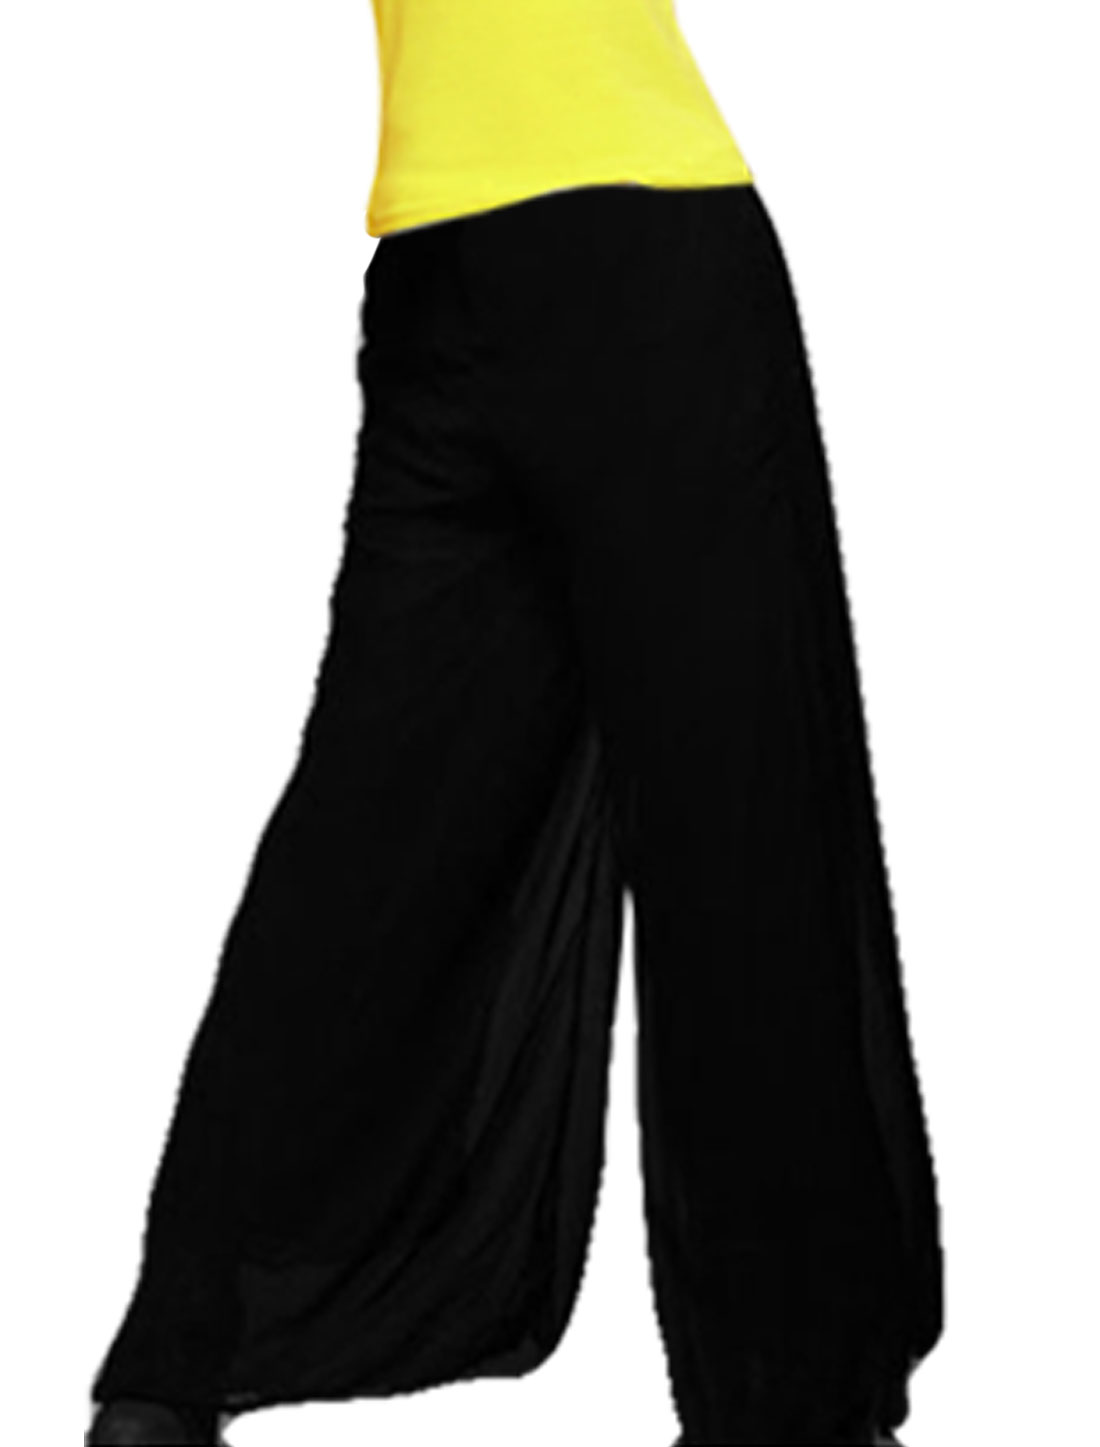 Ladies Elastic Waist Black Chiffon Loose Full Length Pants XS